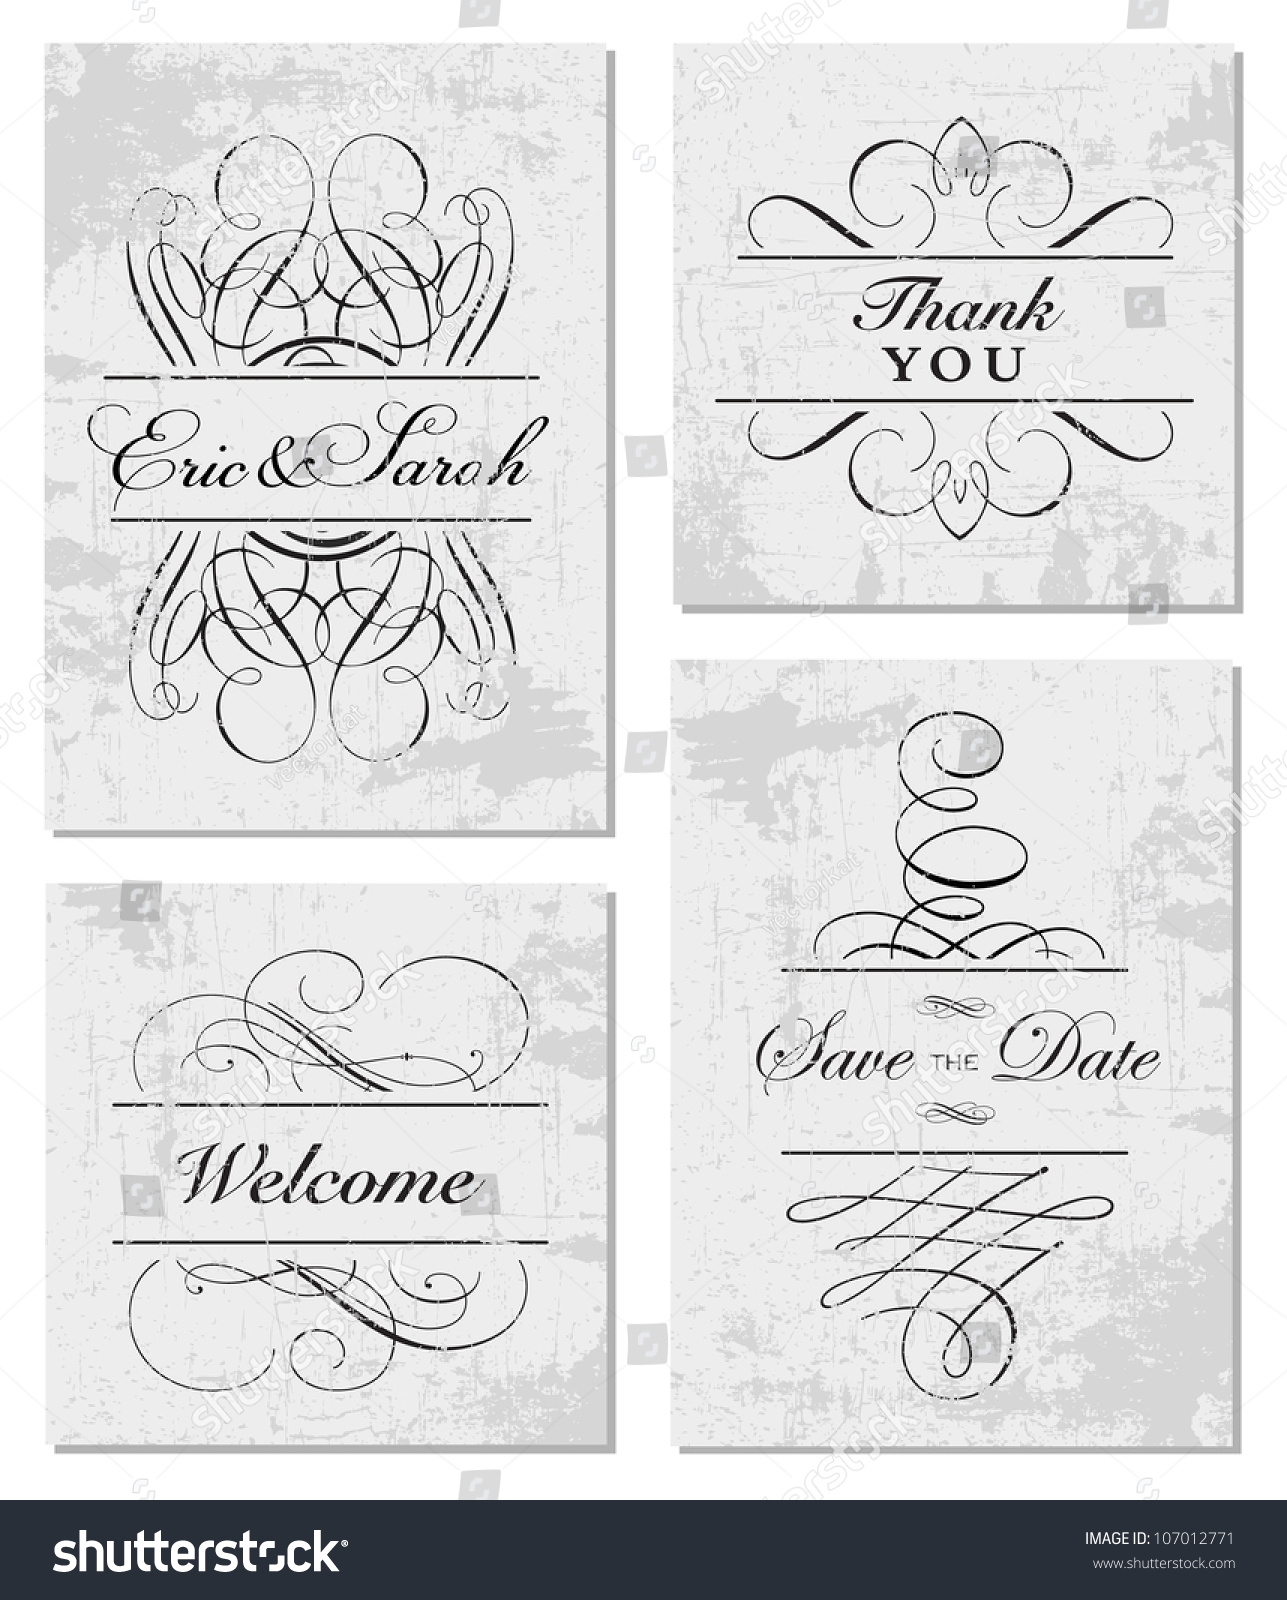 Vector grunge swirl frame set easy stock vector 107012771 shutterstock vector grunge swirl frame set easy to edit perfect for invitations or announcements stopboris Images